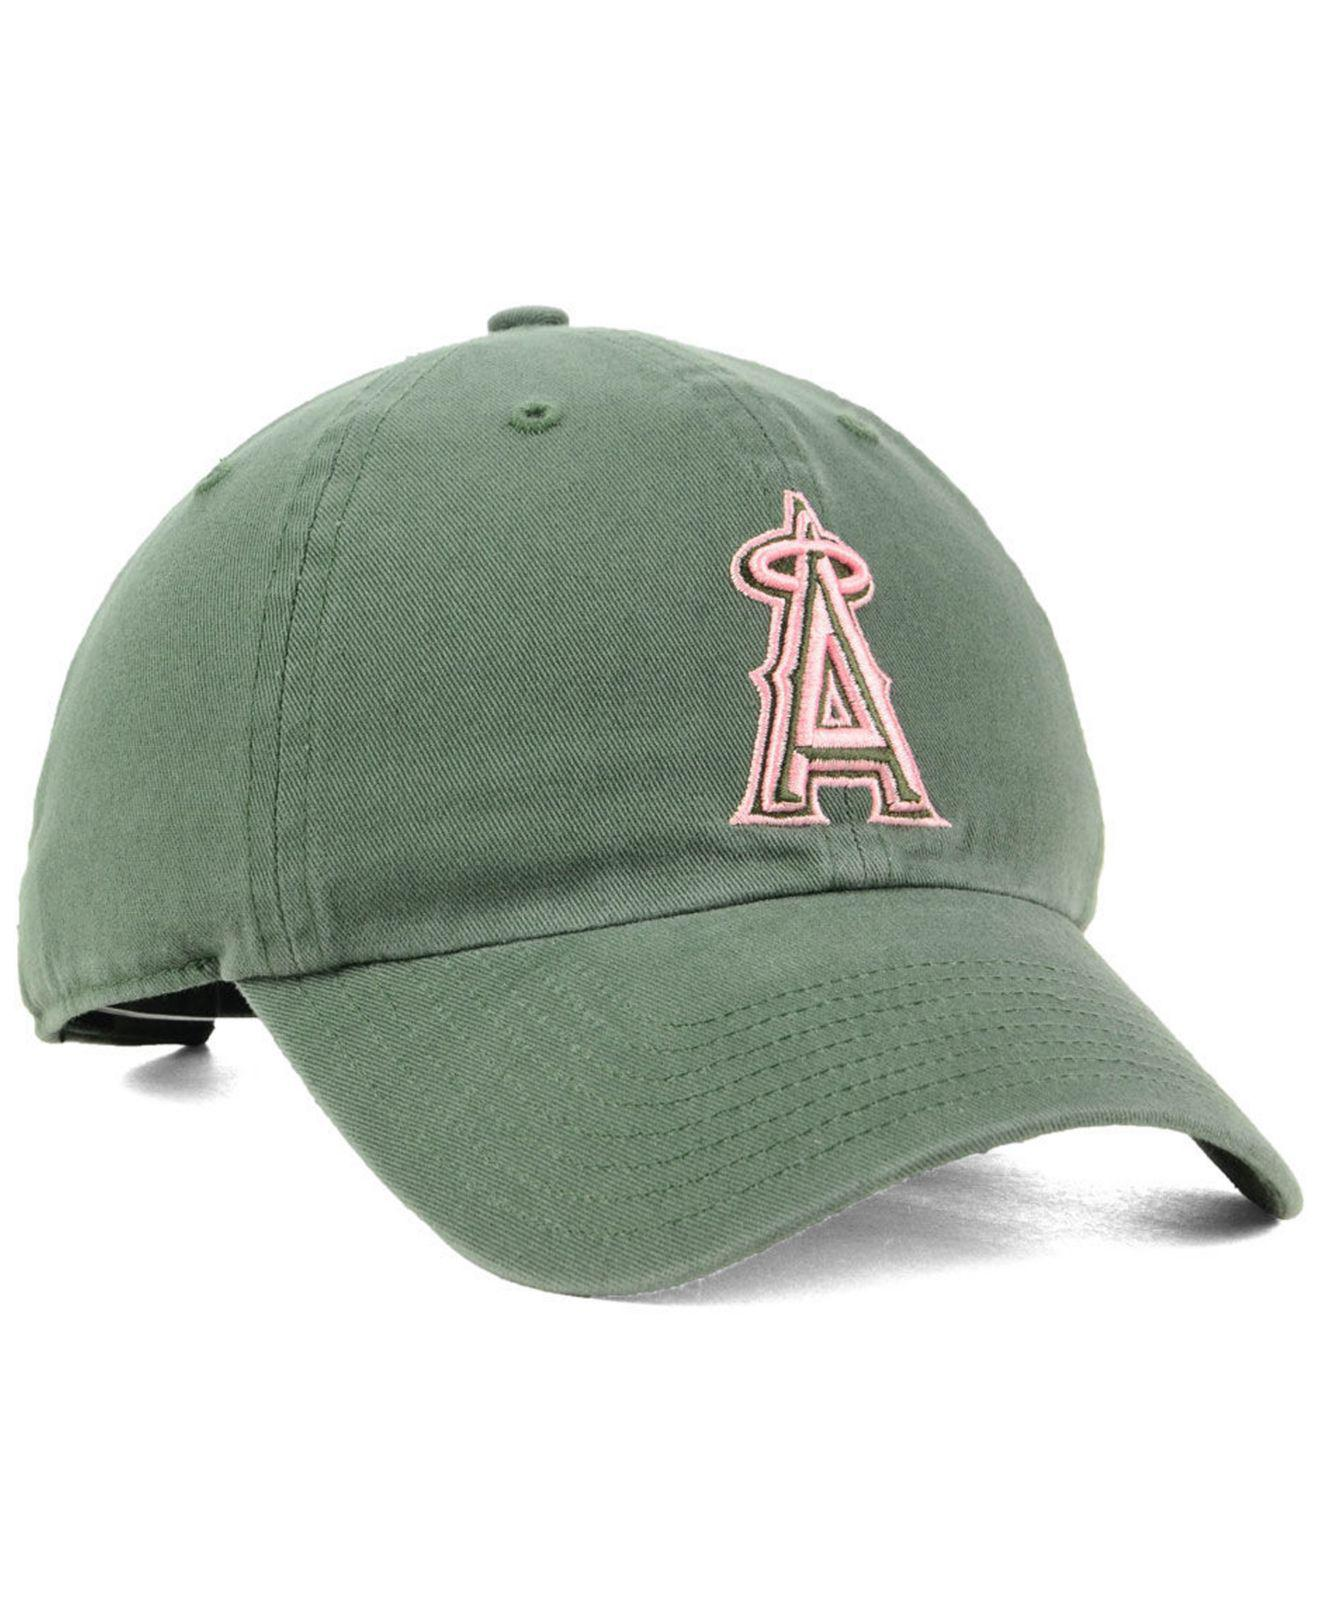 cheaper 971f5 70161 ... norway lyst 47 brand los angeles angels moss pink clean up cap in green  f3c0c 40c04